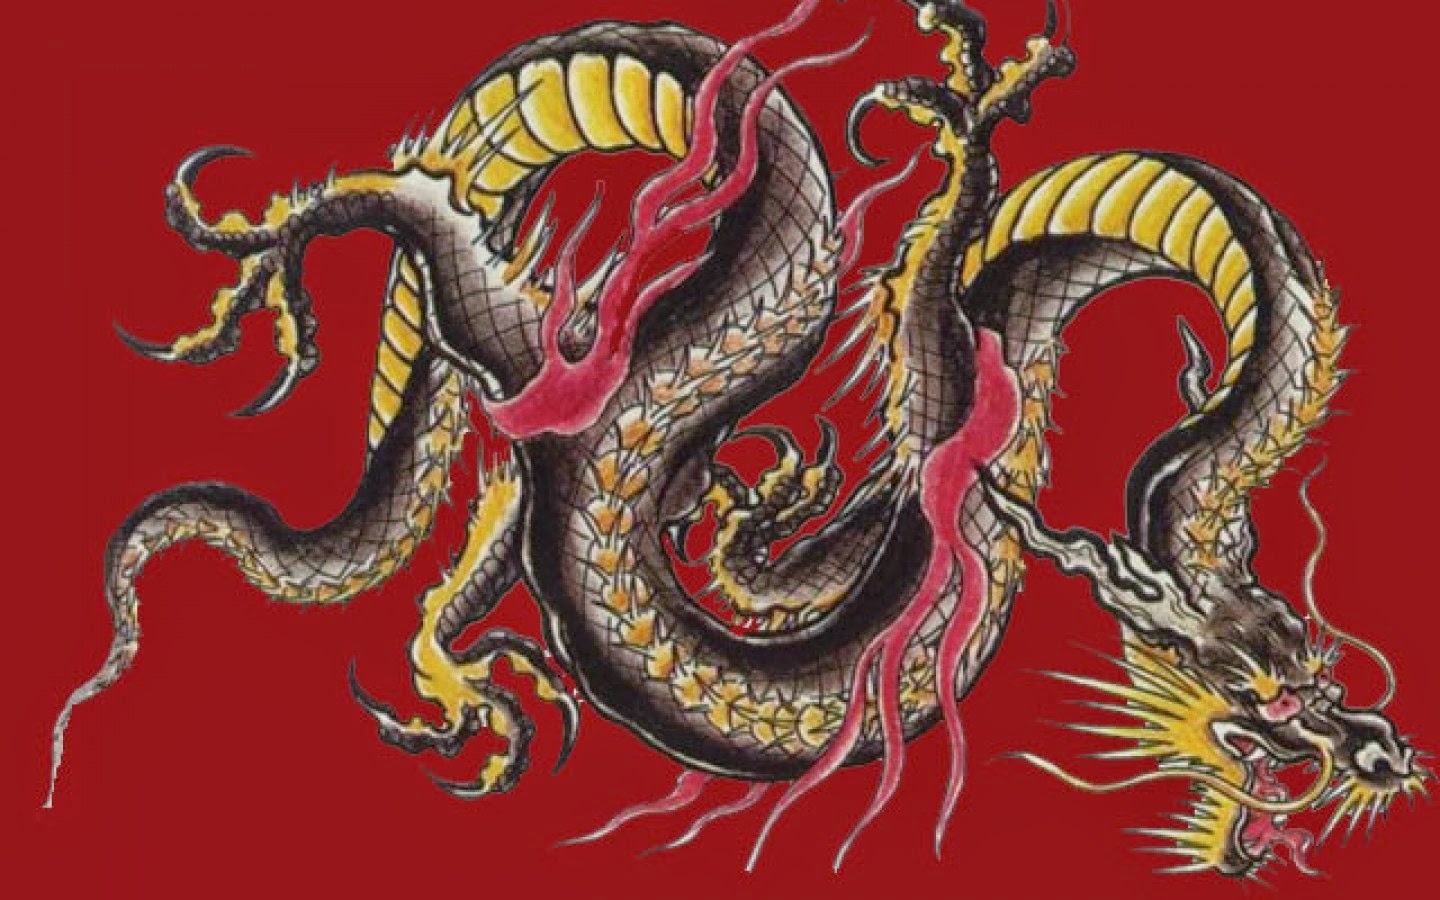 Imaginary Wallpapers Hd Chinese Dragon Wallpapers Hd Amp Background Desktop